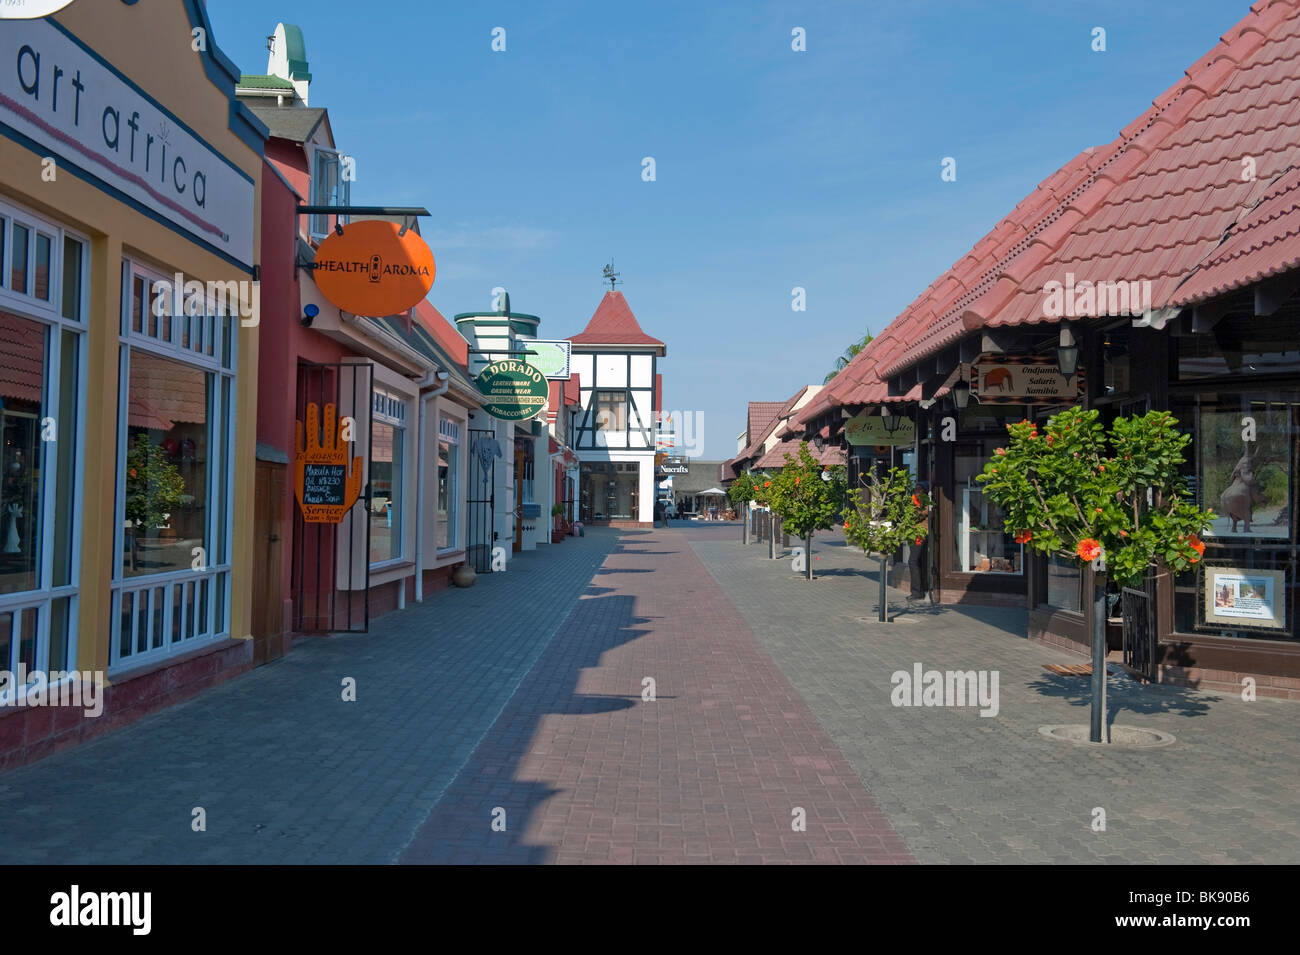 Shopping precinct on Woermann Street in Swakopmund, Namibia - Stock Image